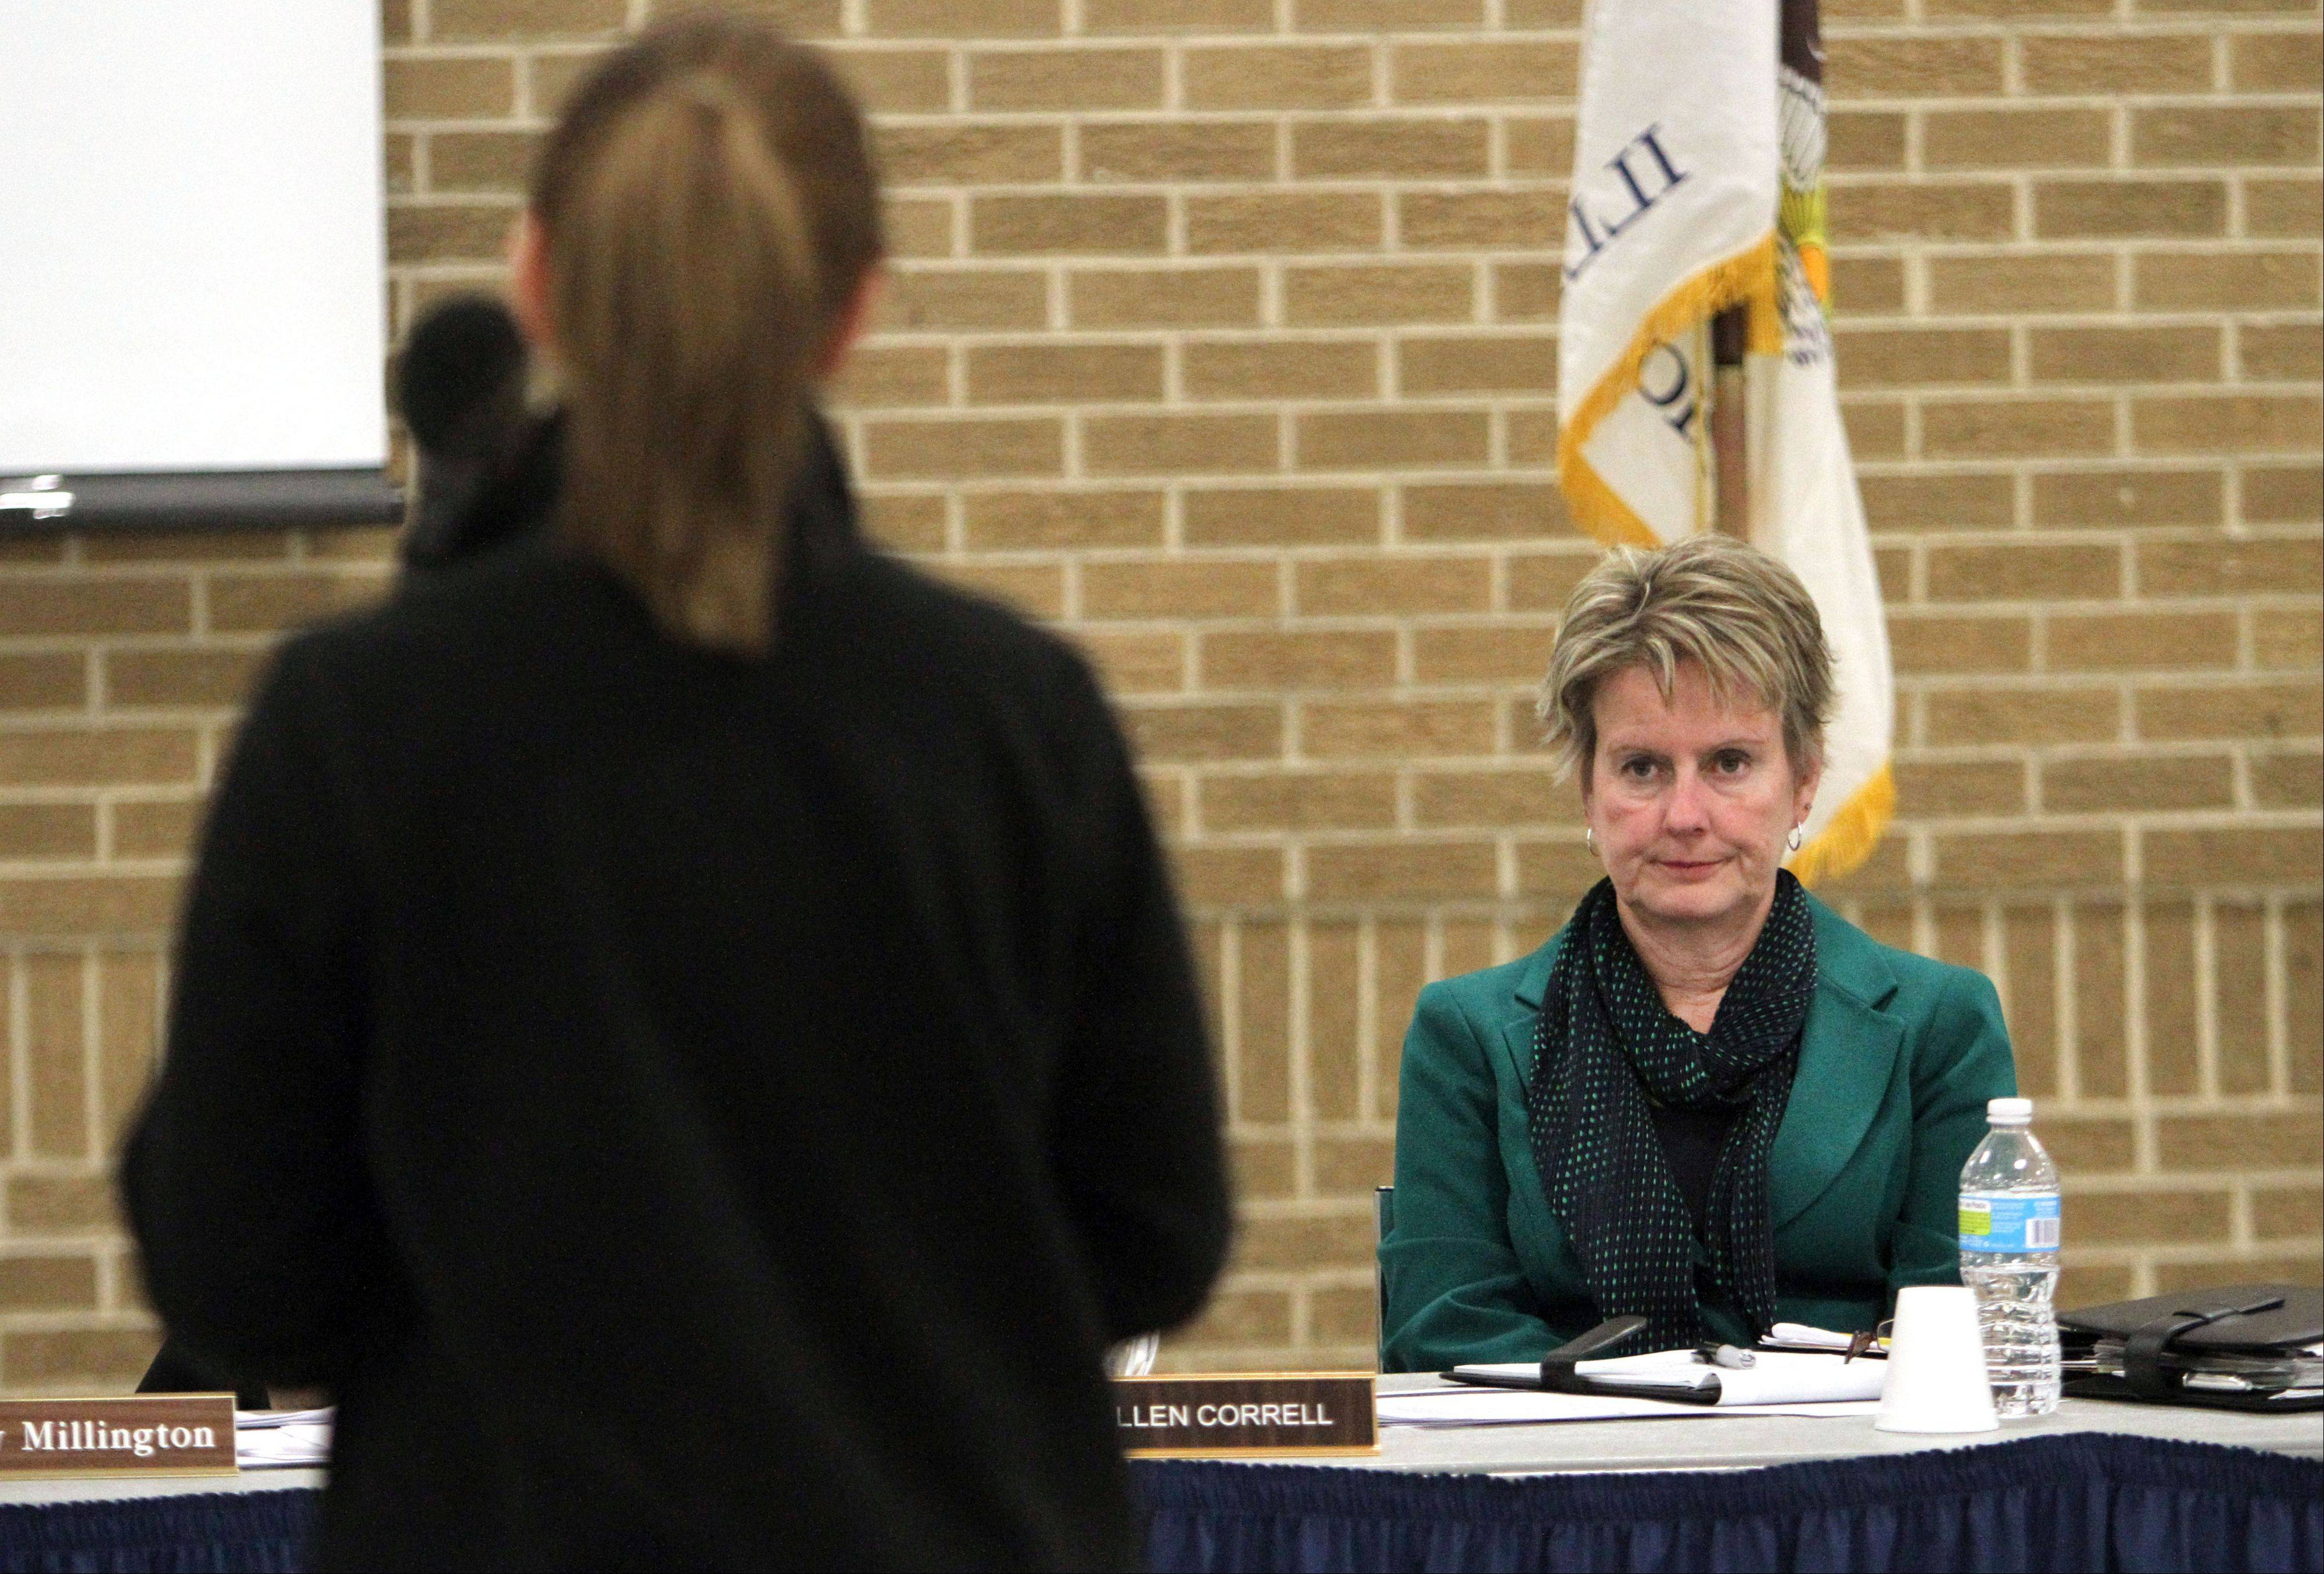 Grayslake Dist. 46 makes case in town hall as strike date looms